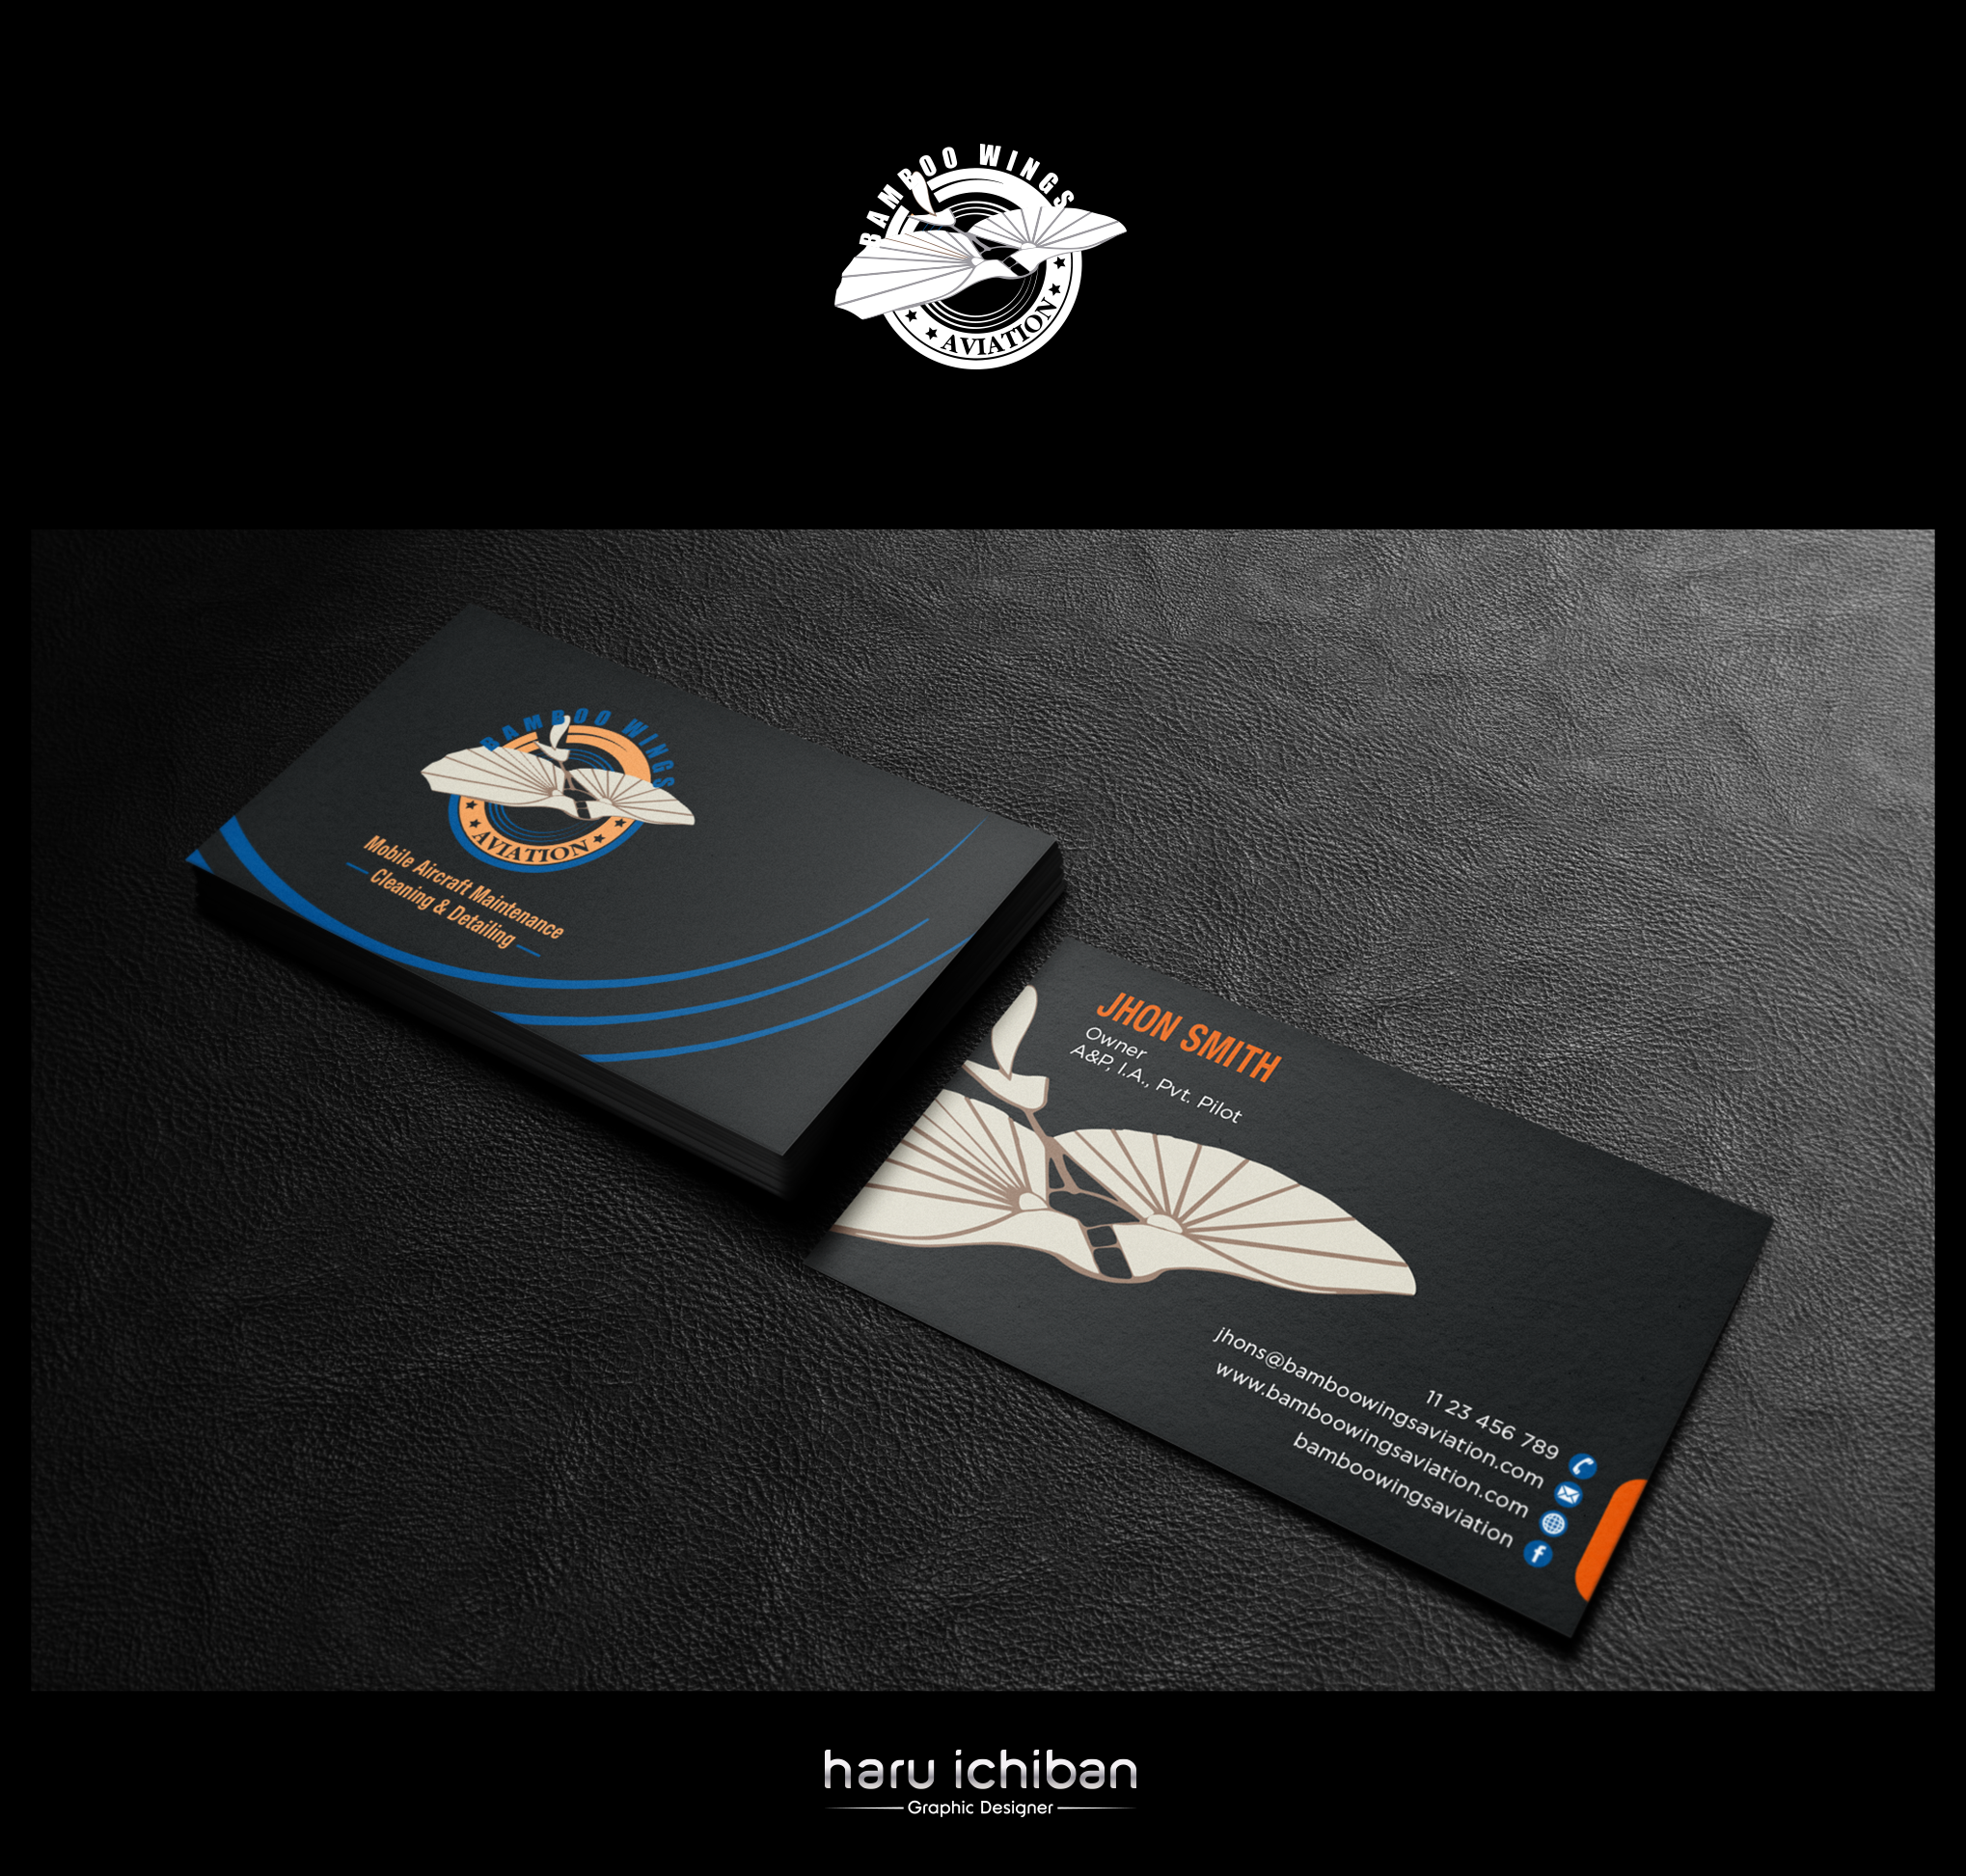 Design a new business card for an aviation maintenance/cleaning detailing business